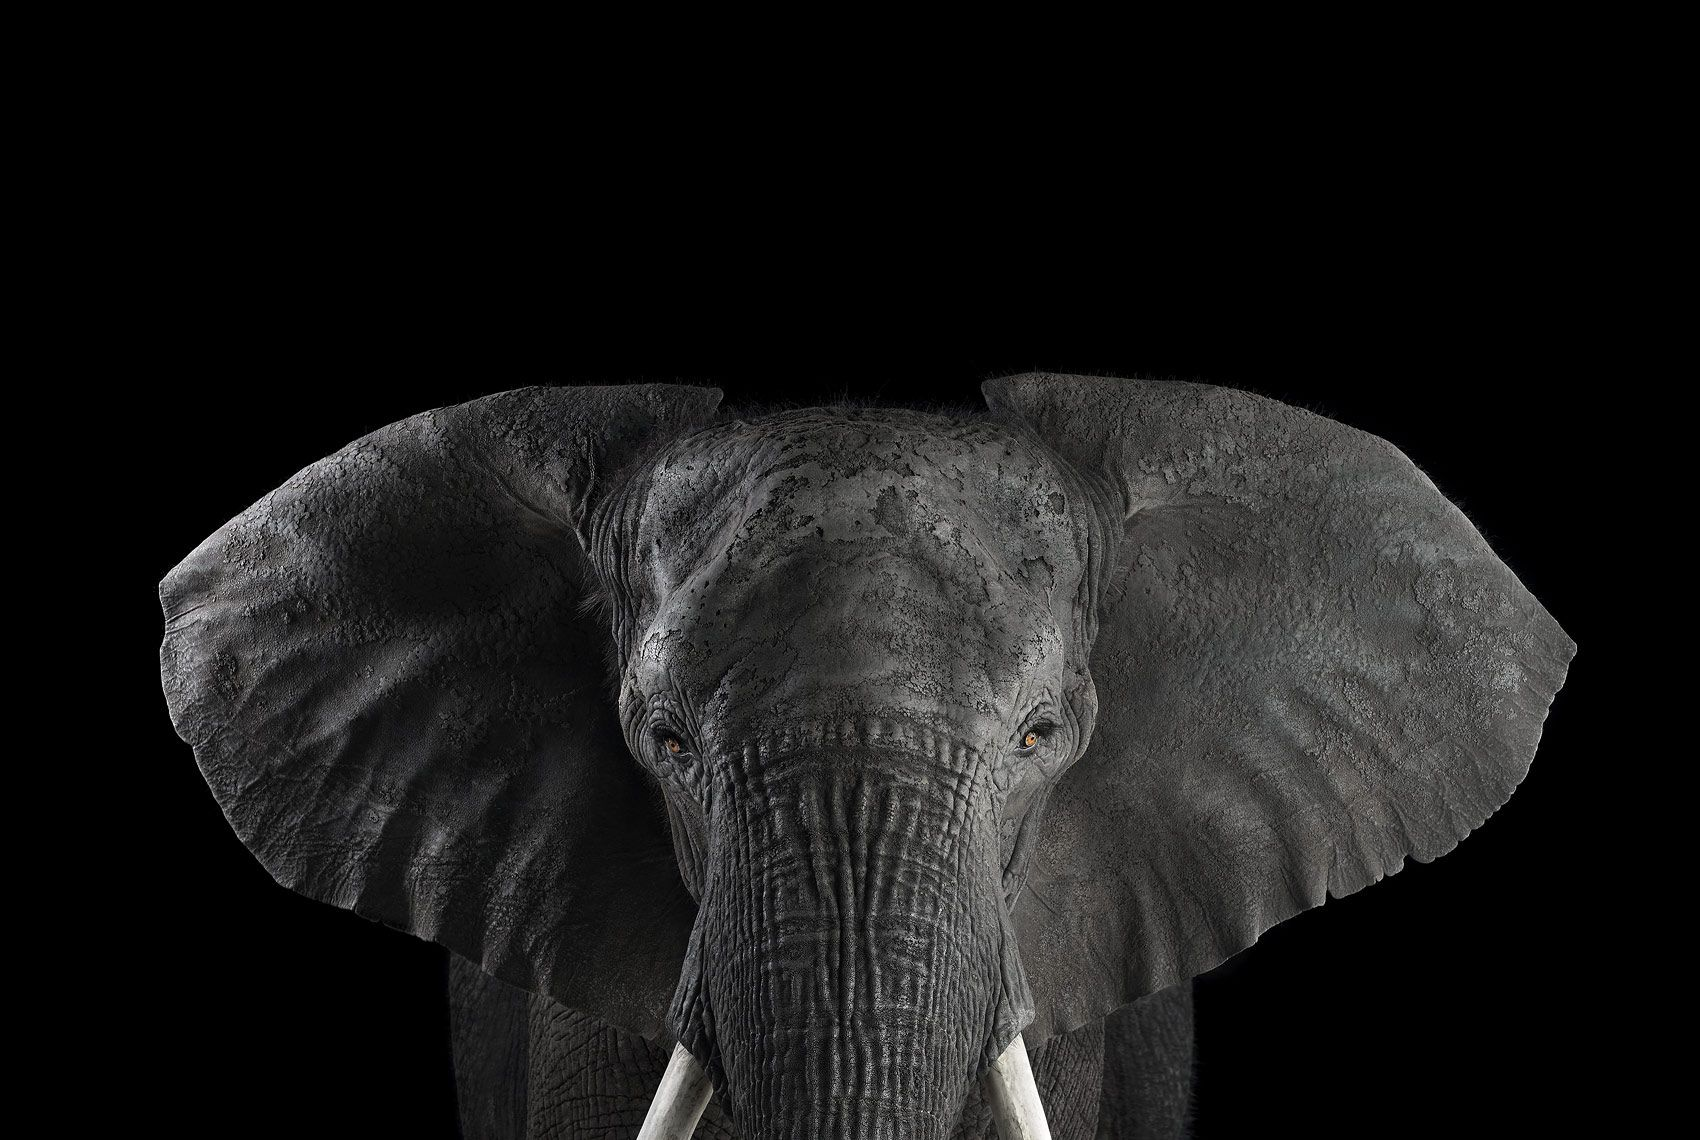 African Elephant #1, Los Angeles, CA, 2011,Brad Wilson,Photographie